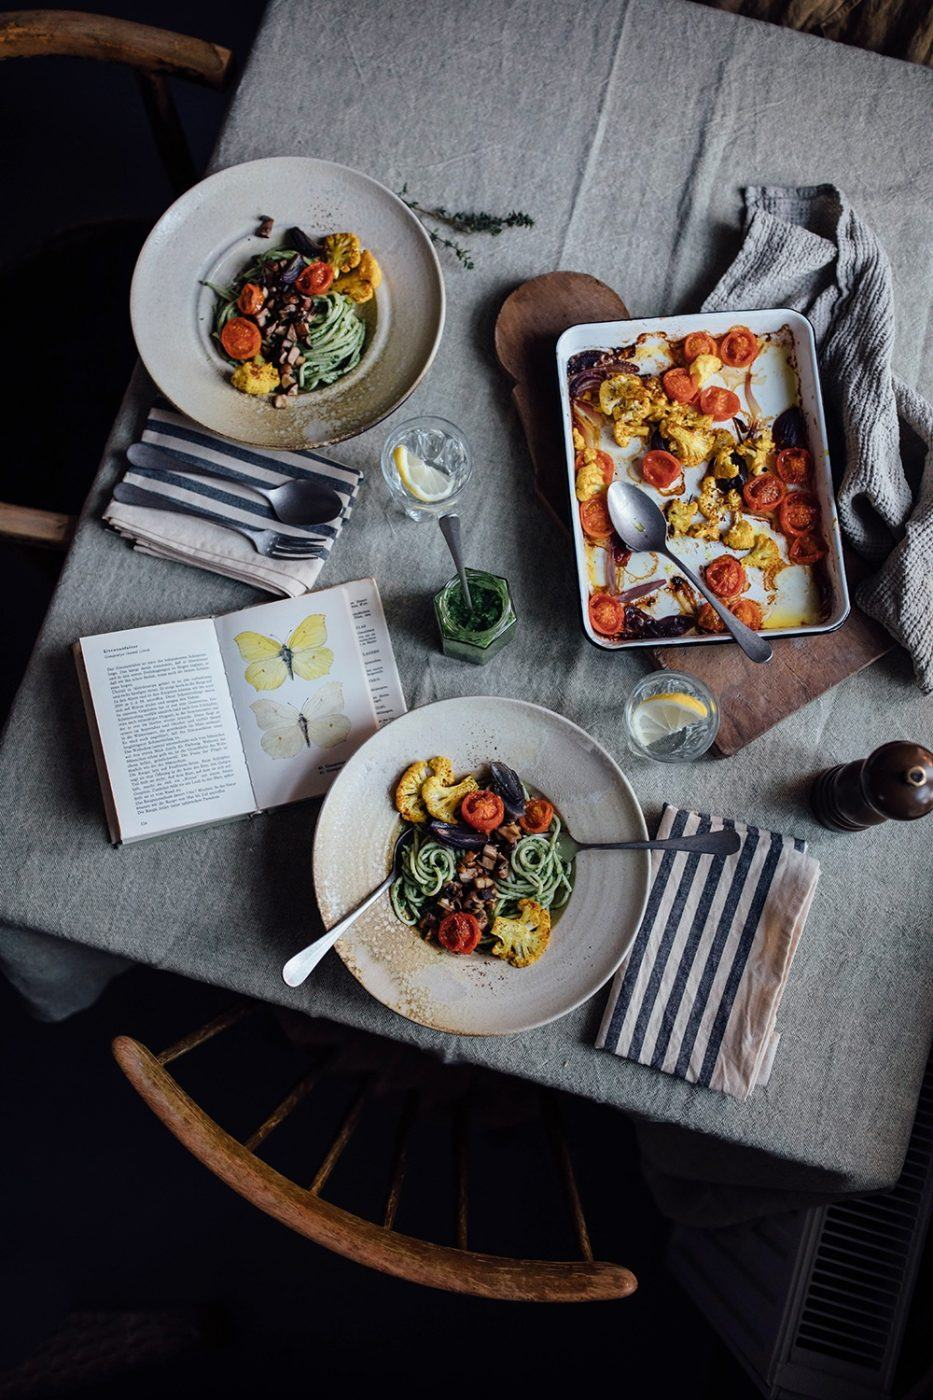 Image for Gluten-free Pasta with vegan Spinach Pesto and oven-roasted Vegetables